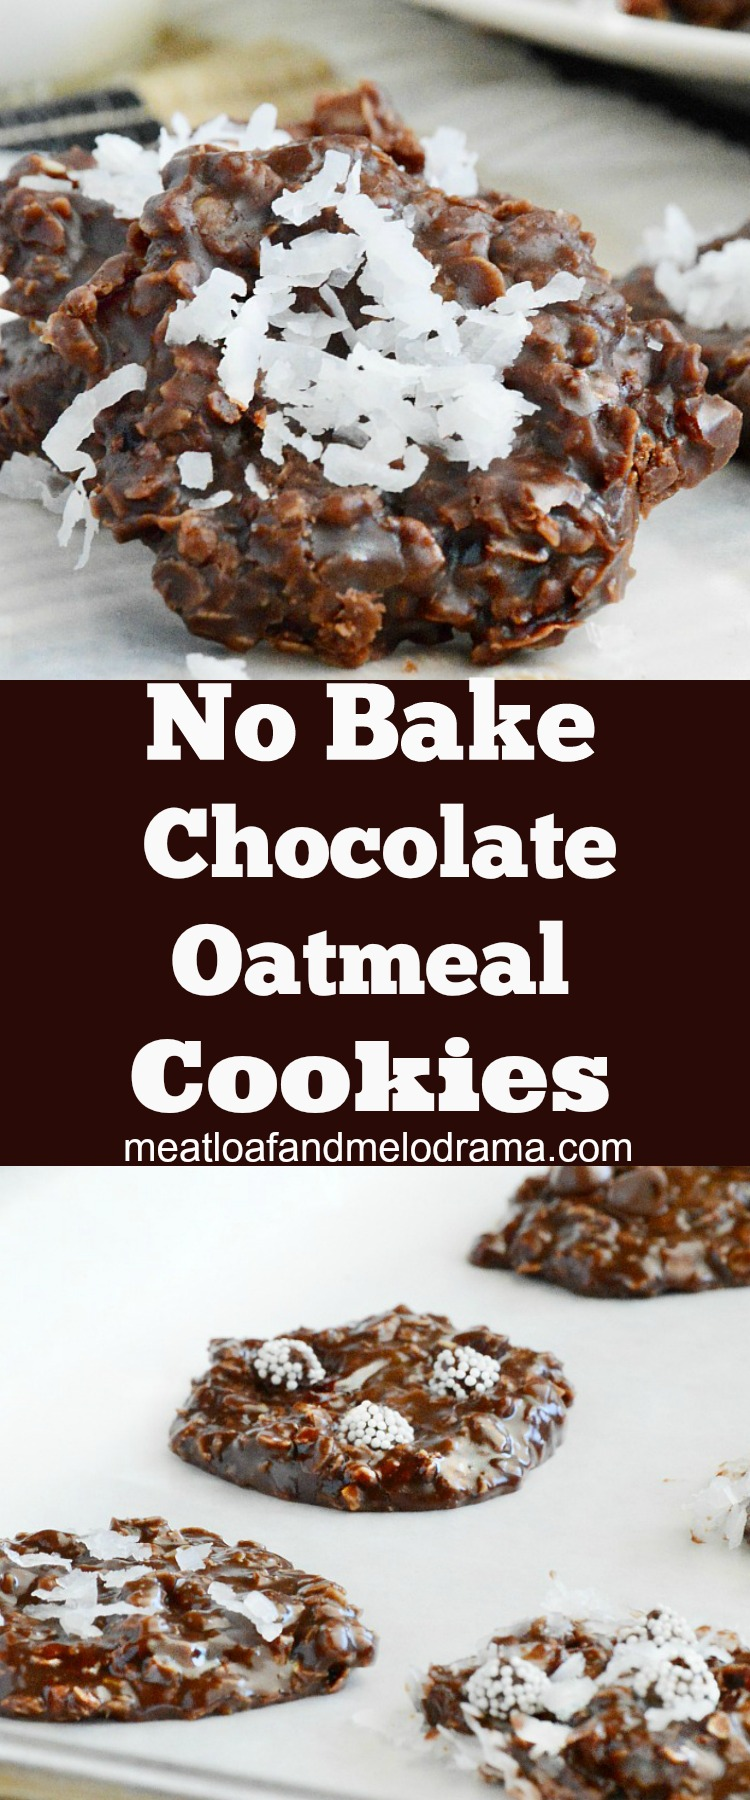 No Bake Chocolate Oatmeal Cookies - Meatloaf and Melodrama